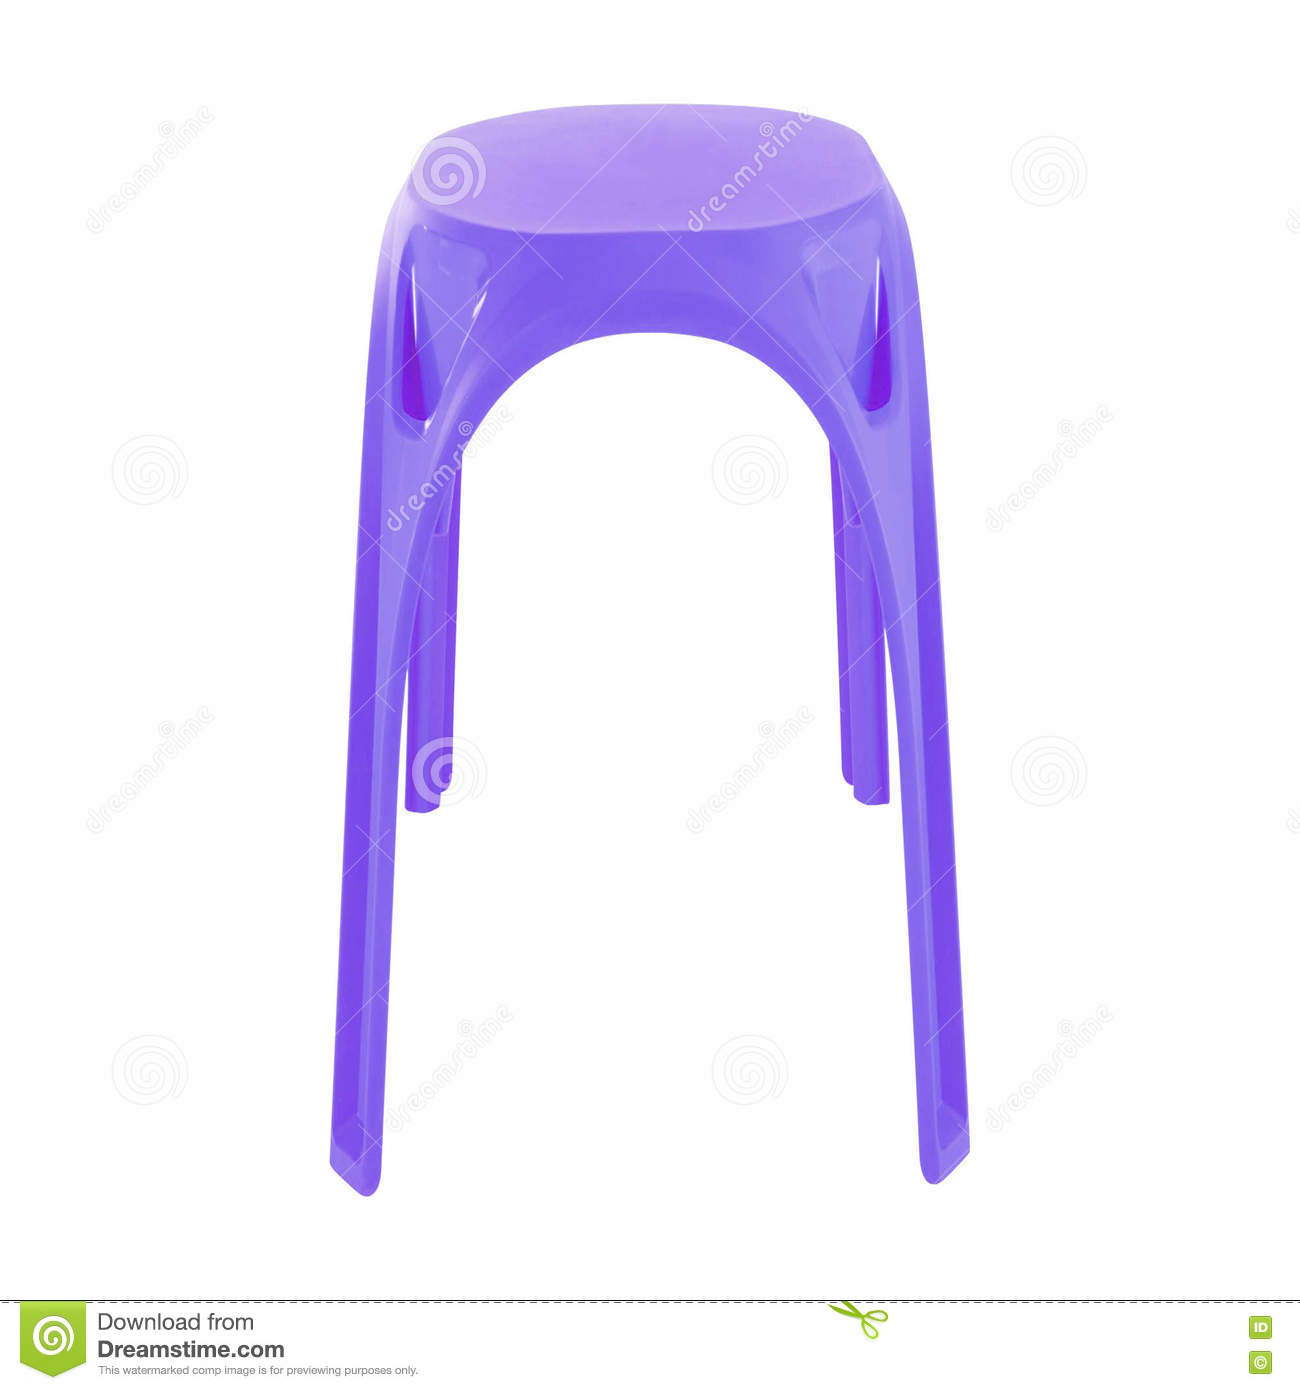 Tabouret Violet D Isolement Photo Stock Image Du Isolement Tabouret 75707914